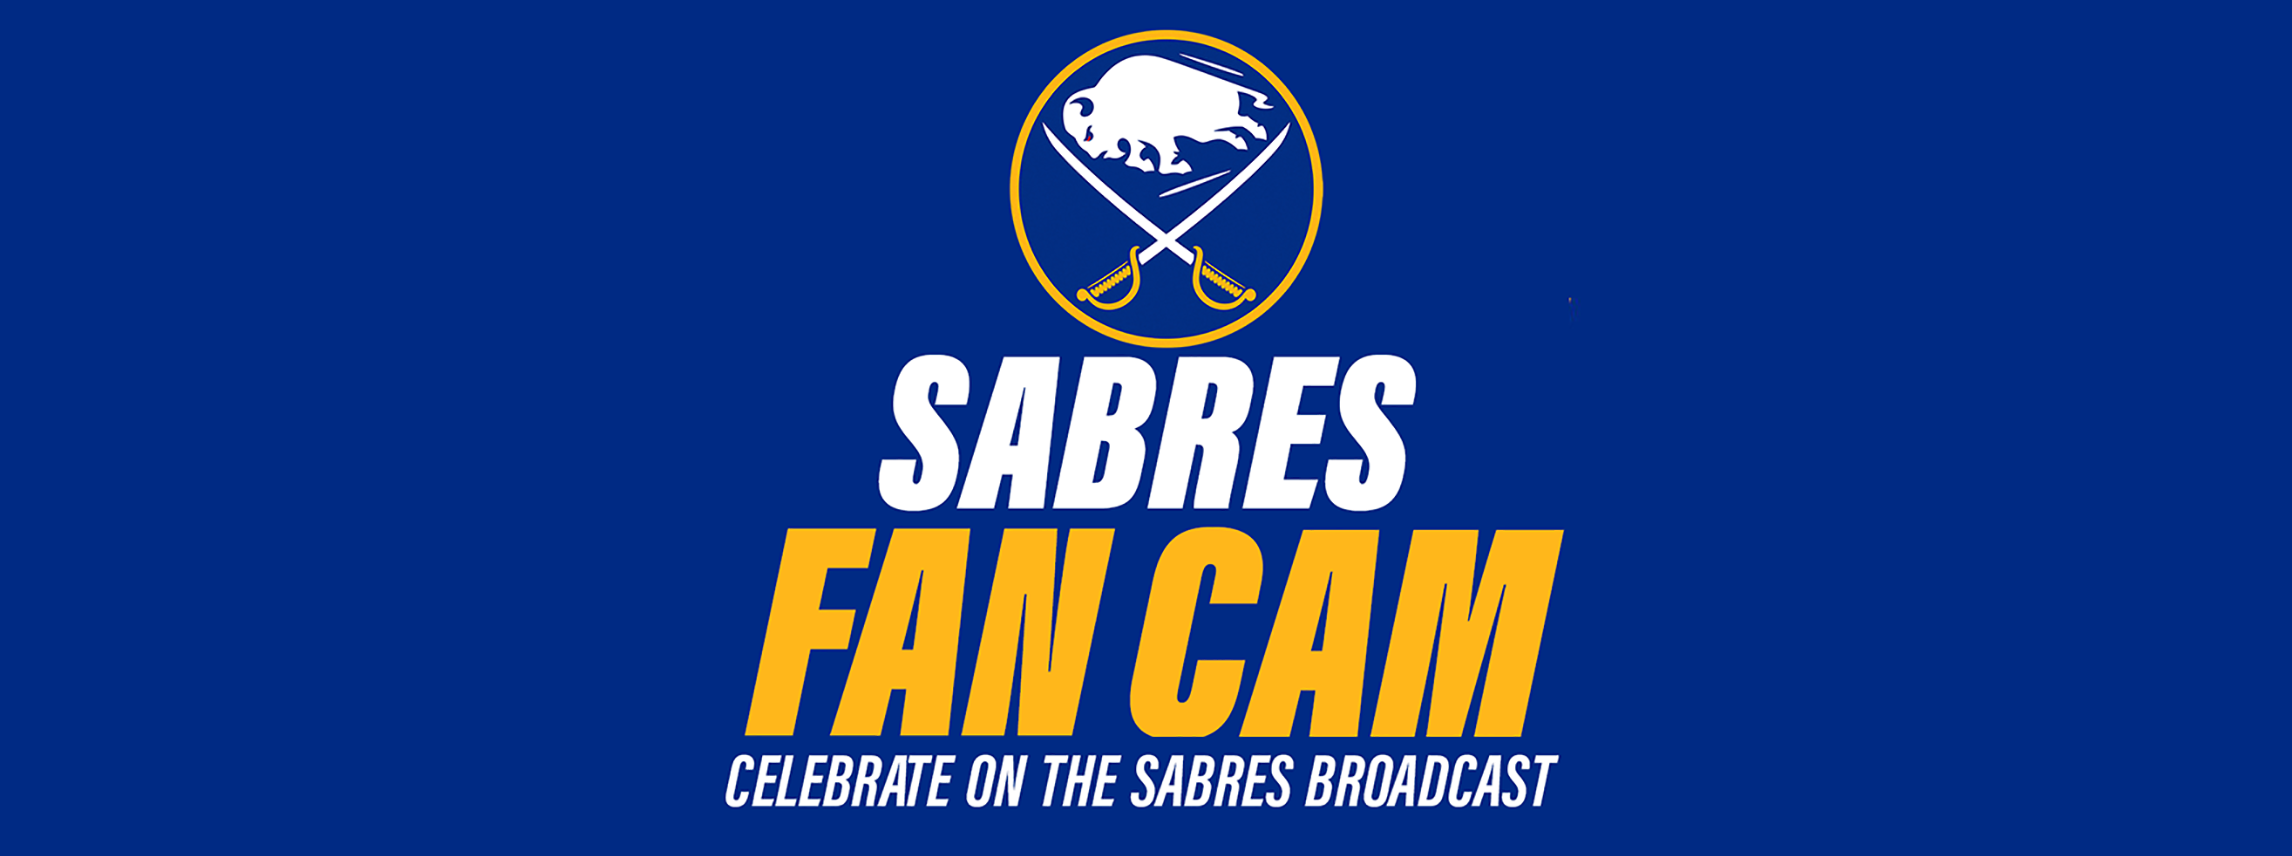 2021 - Sabres - Fan Cam Submissions